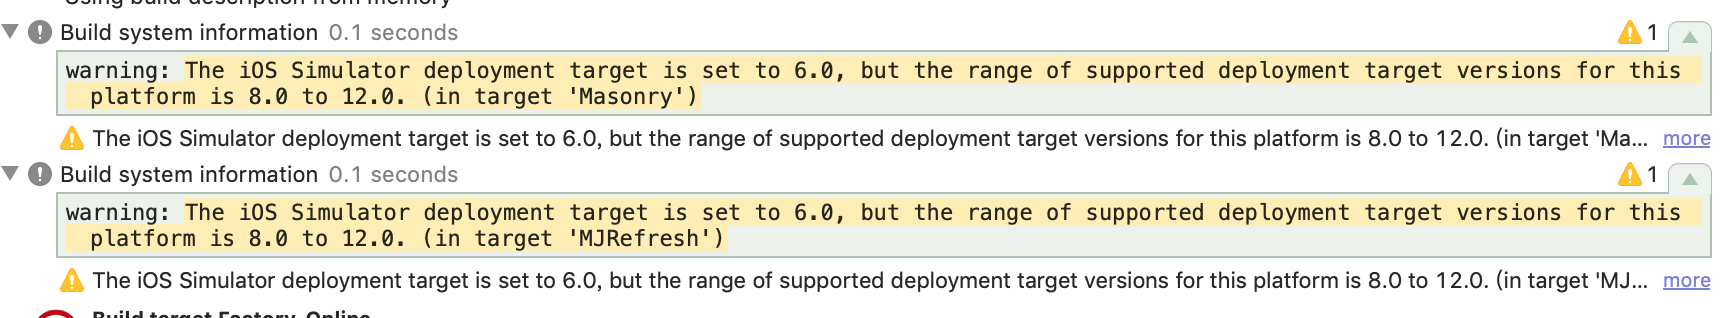 Xcode编译警告:warning: The iOS Simulator deployment target is set to 6.0, but the range of supported deployment target versions for this platform is 8.0 to 12.0. (in target 'Masonry')